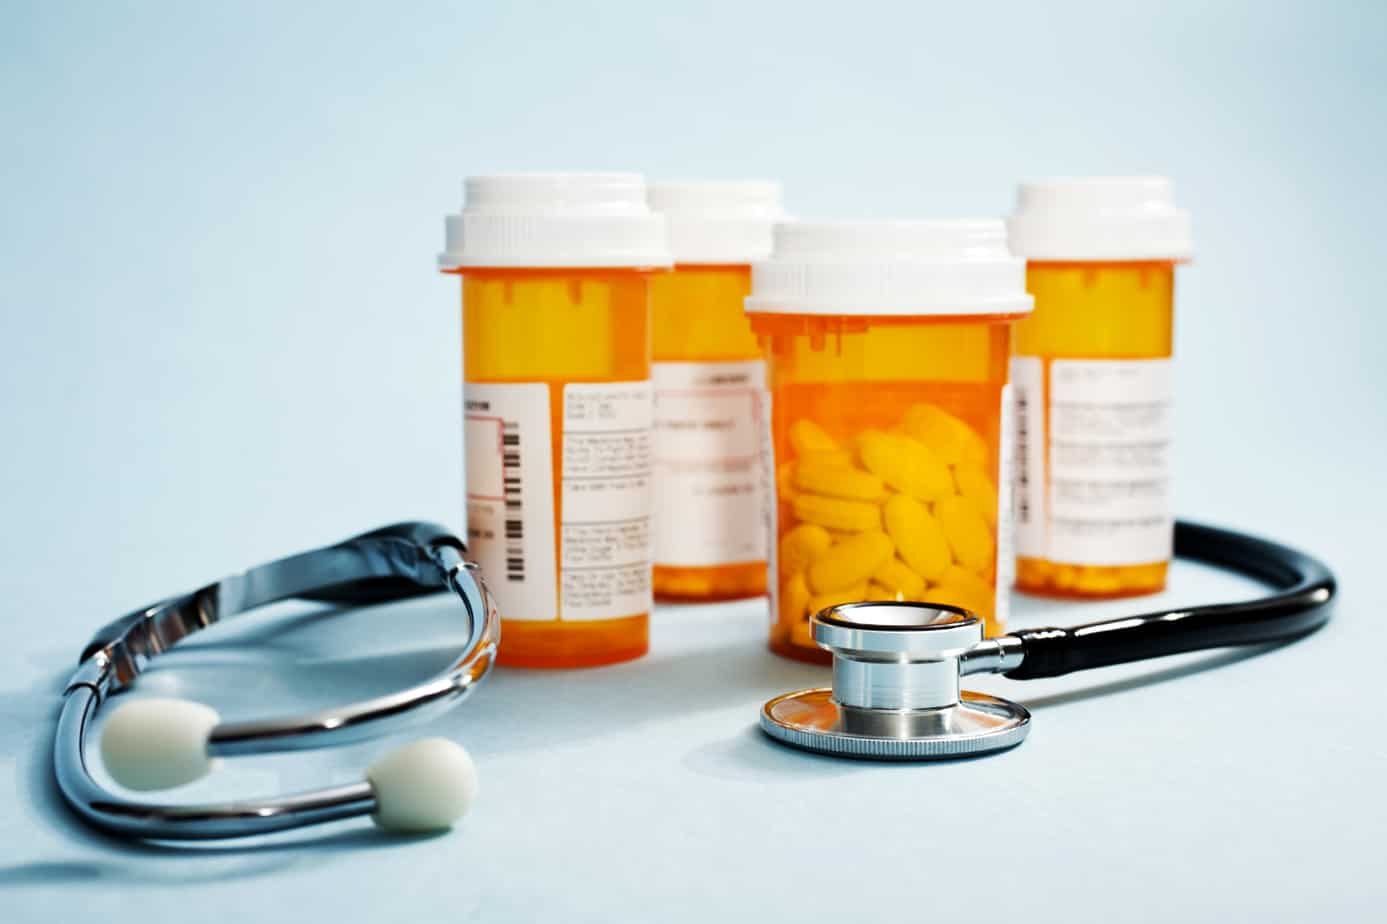 Luvox for Prostatitis - Side Effects and Warnings